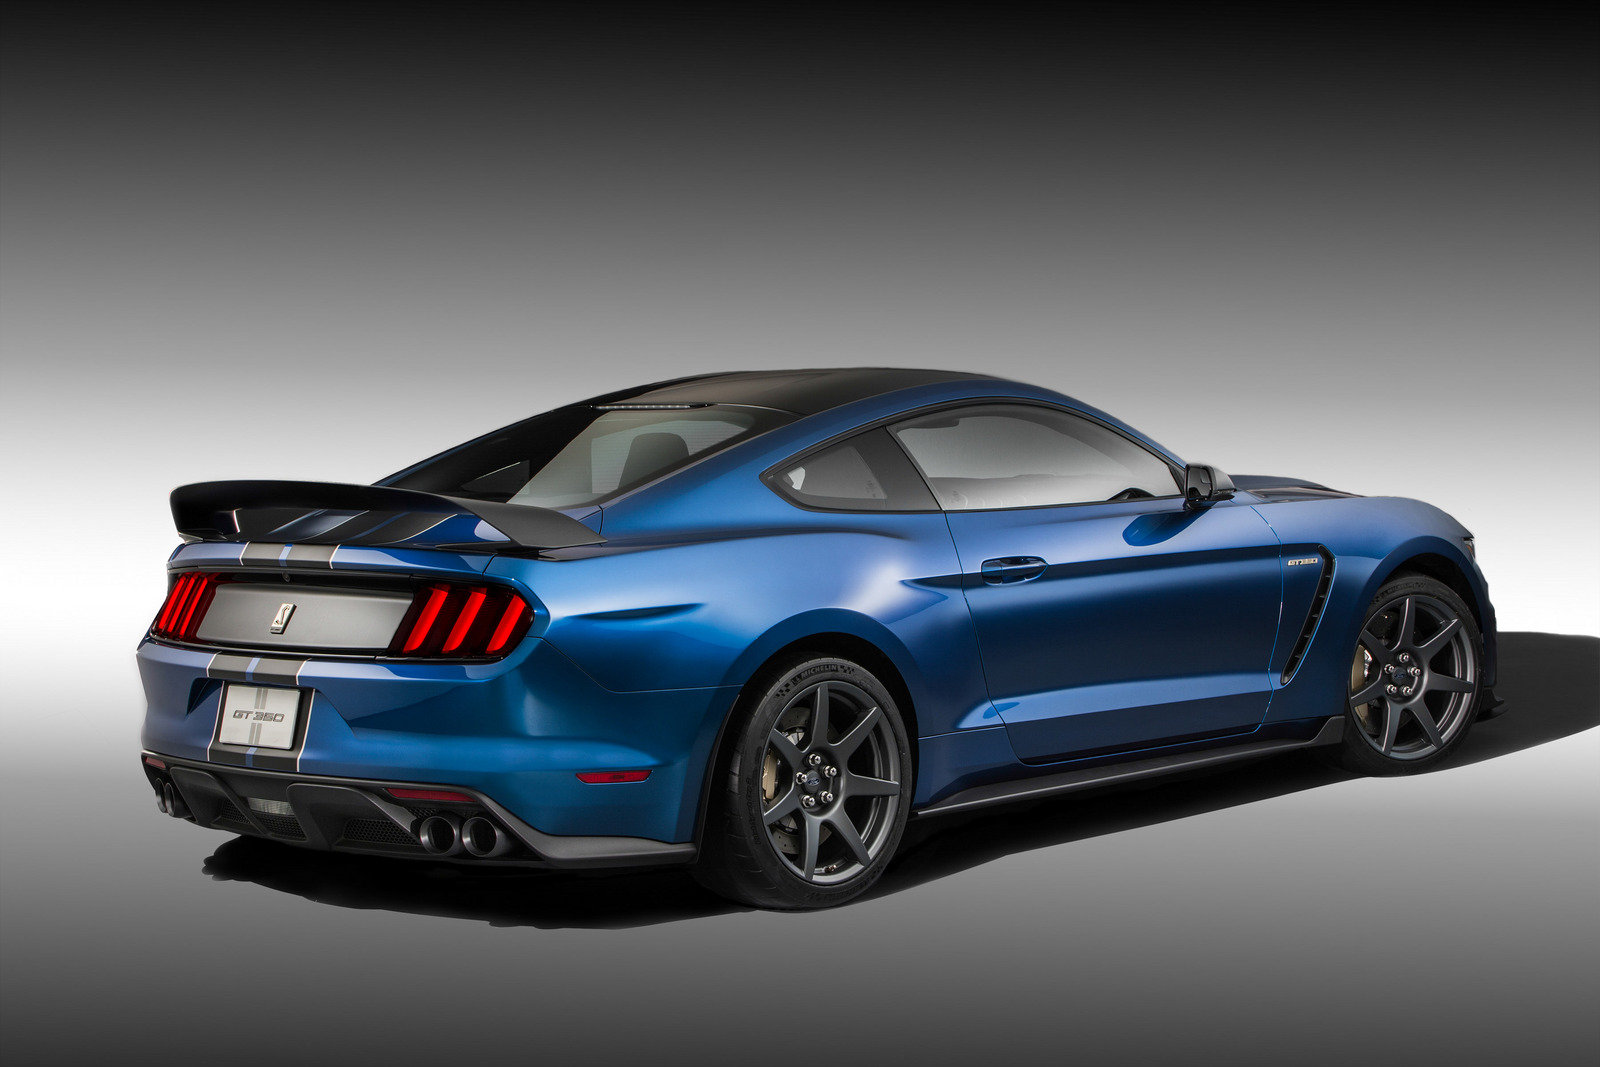 2016 ford shelby gt350r mustang picture 610240 car. Black Bedroom Furniture Sets. Home Design Ideas